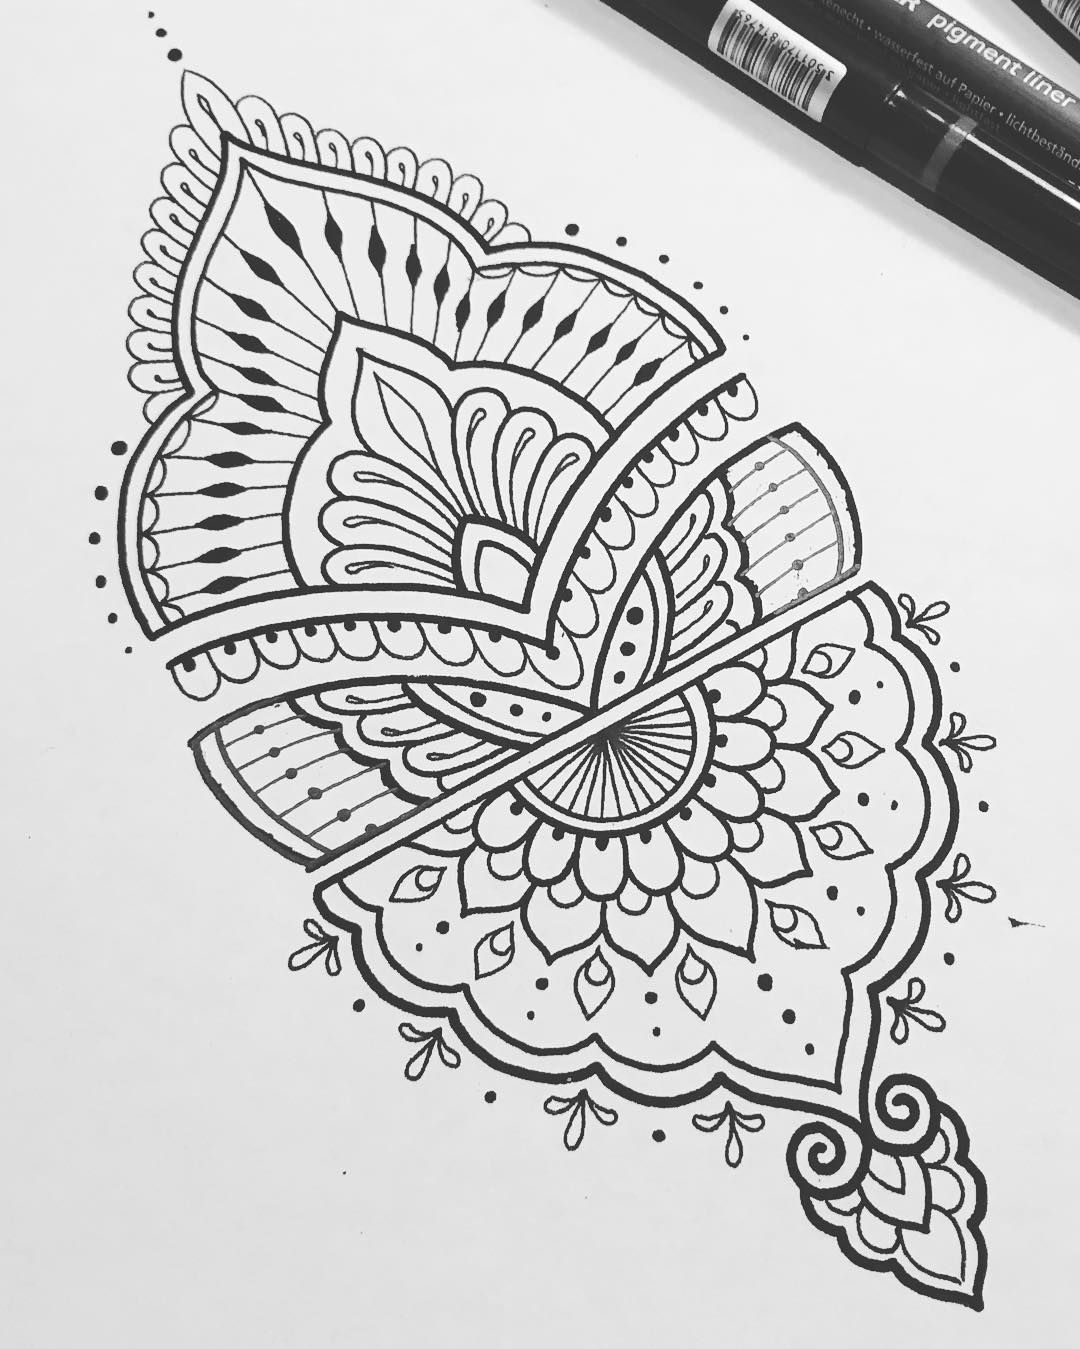 9 Mandala Tattoo Designs And Ideas: Pinterest: Darlynprincess ♡ …